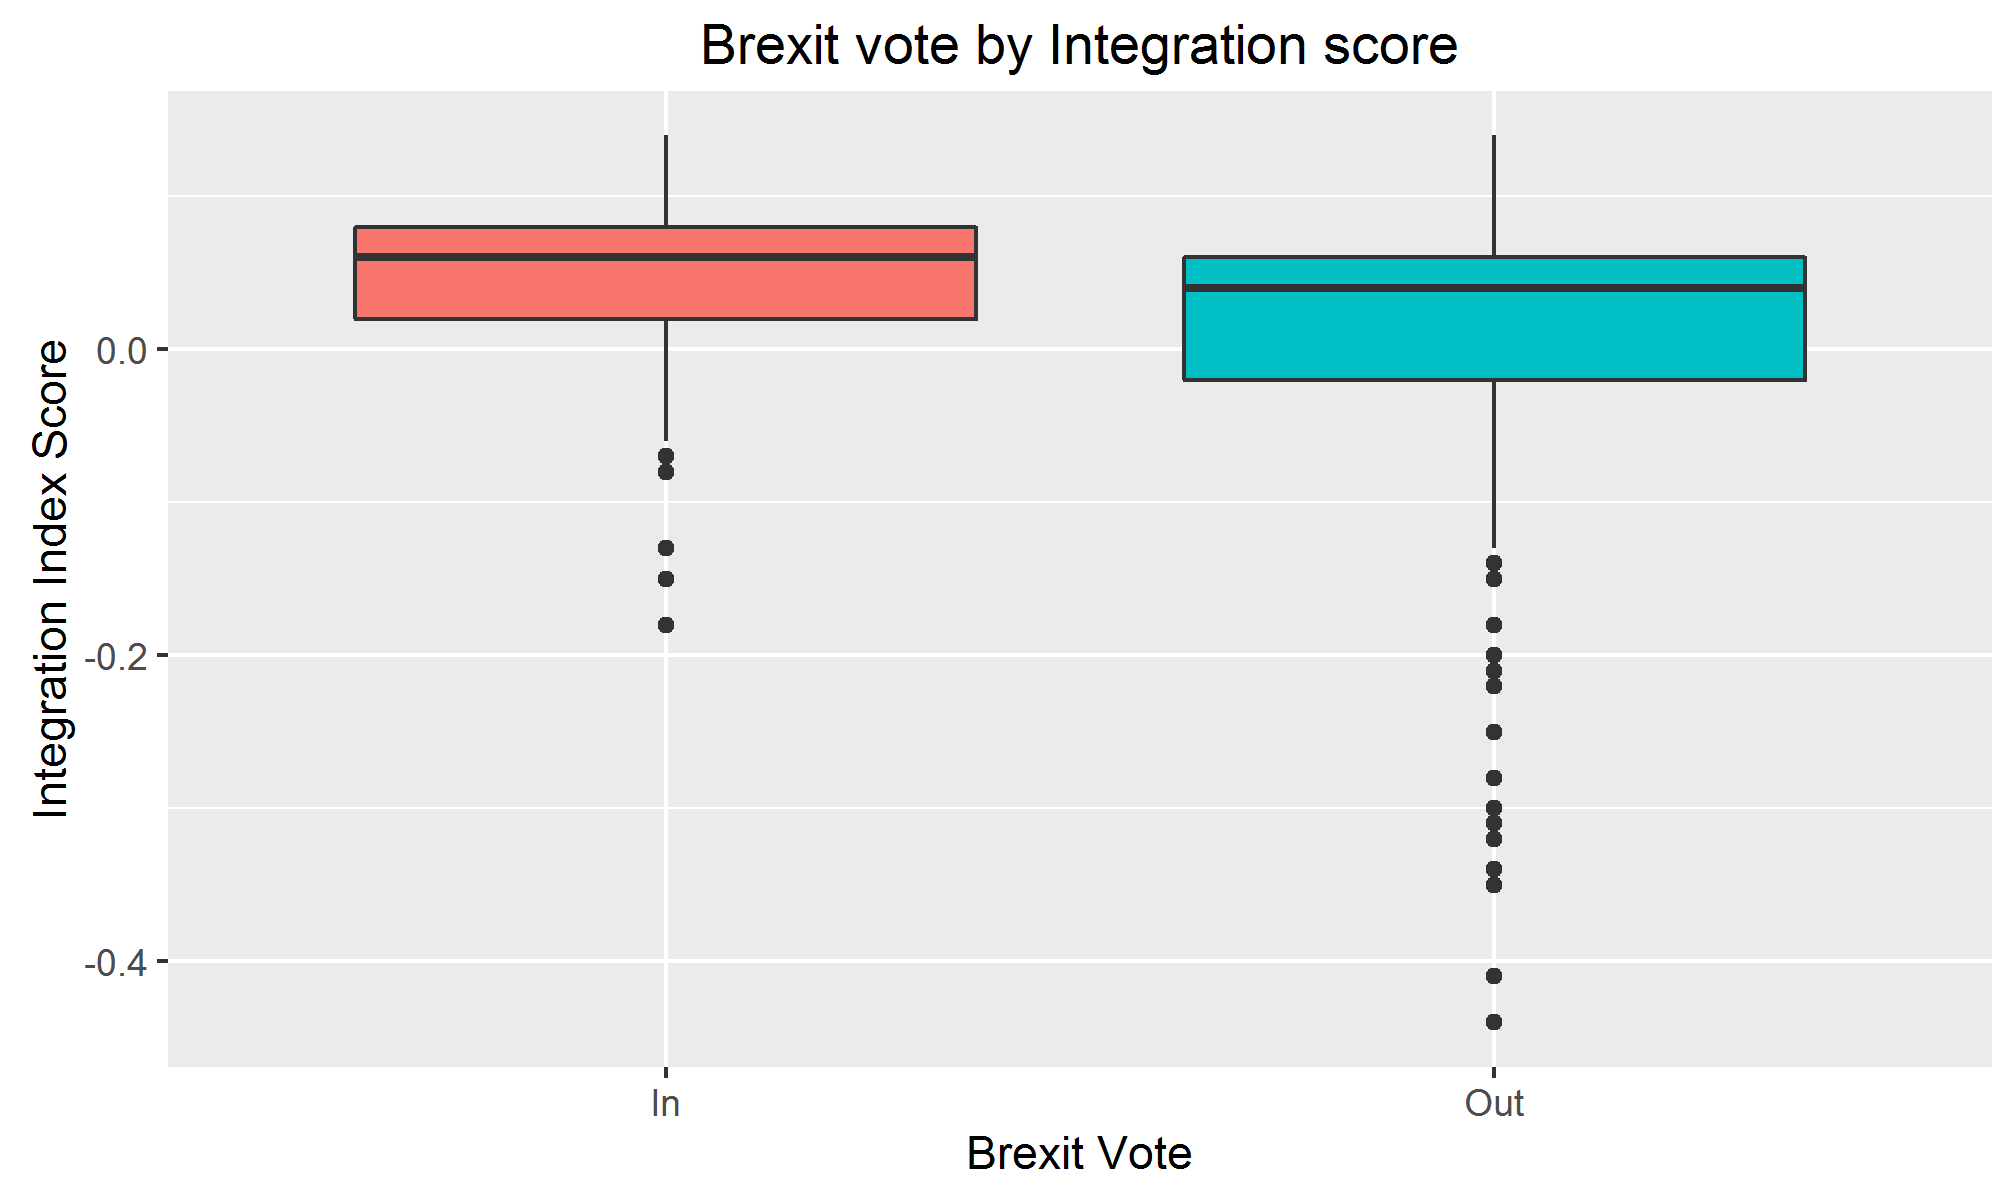 The box-plot shows how the integration scores were distributed between the In and Out votes in the Brexit vote. There is a small but statistically significant difference between the averages of the voting results, showing that more integrated areas were more likely to vote In whereas more segregated areas were more likely to vote Out.